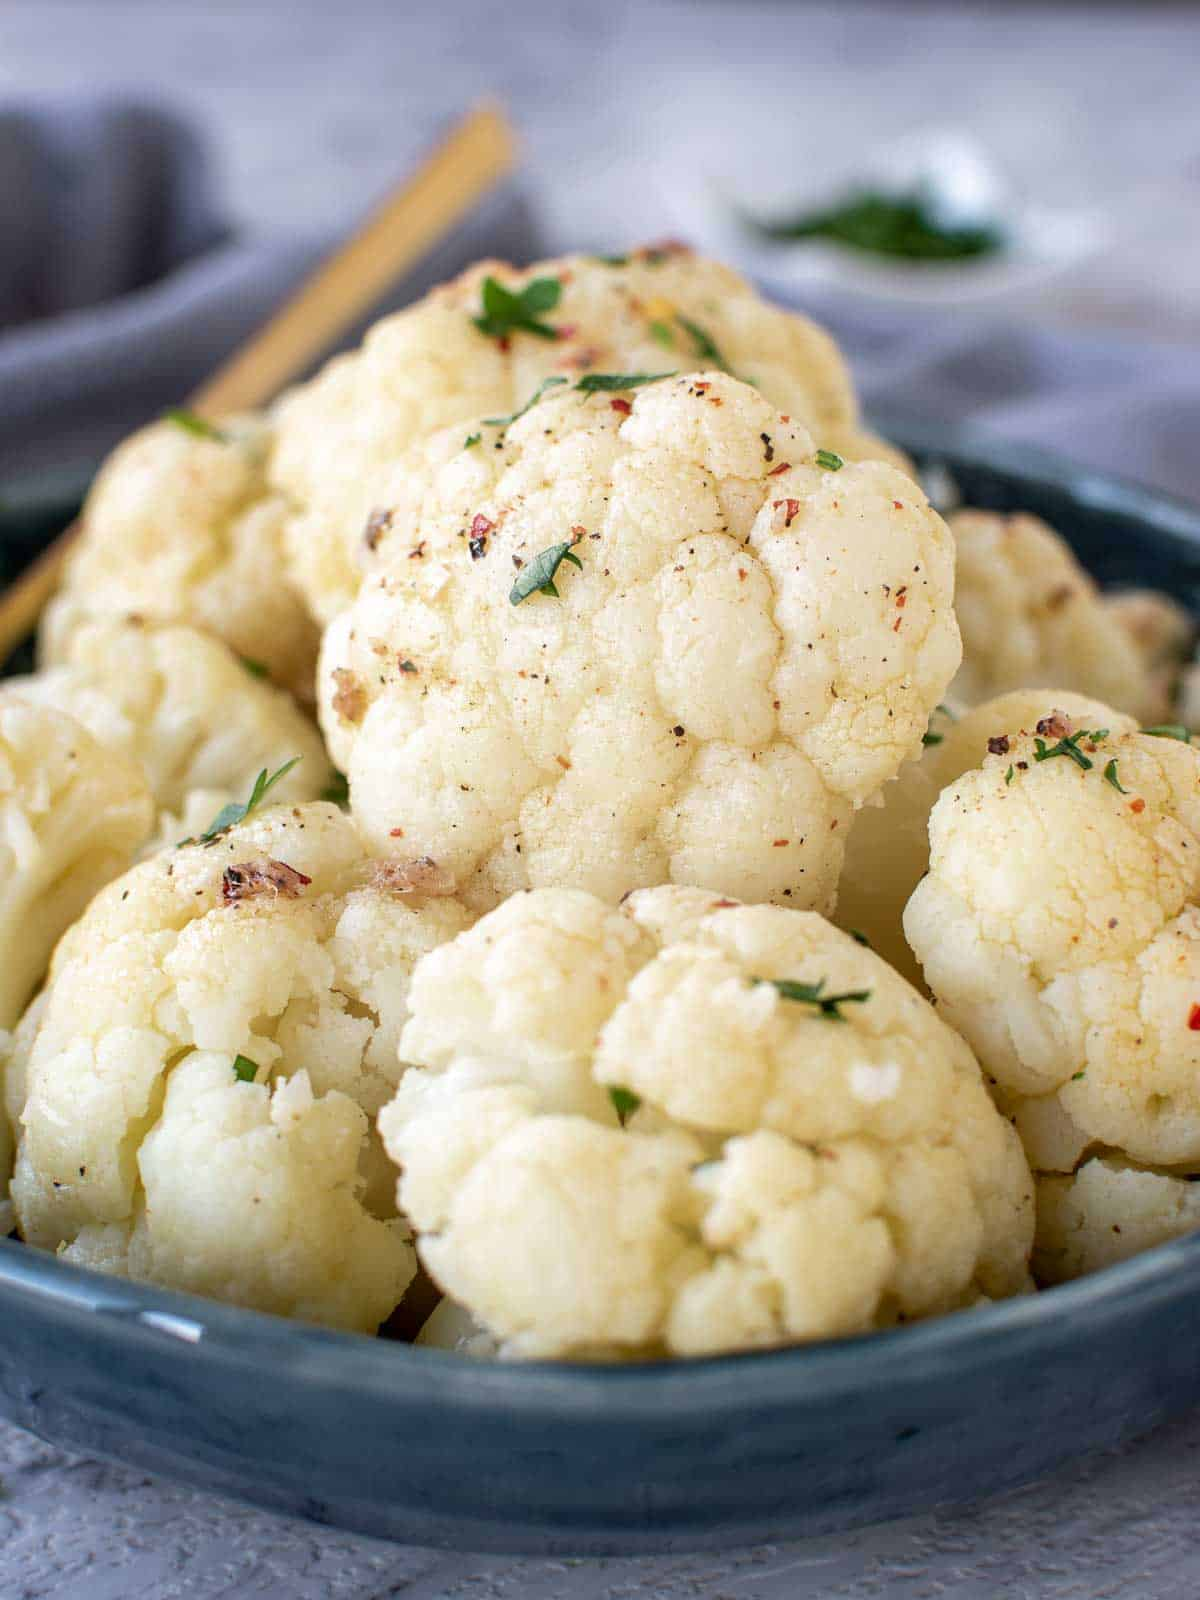 Instant pot cauliflower in a blue bowl on the table ready to eat.